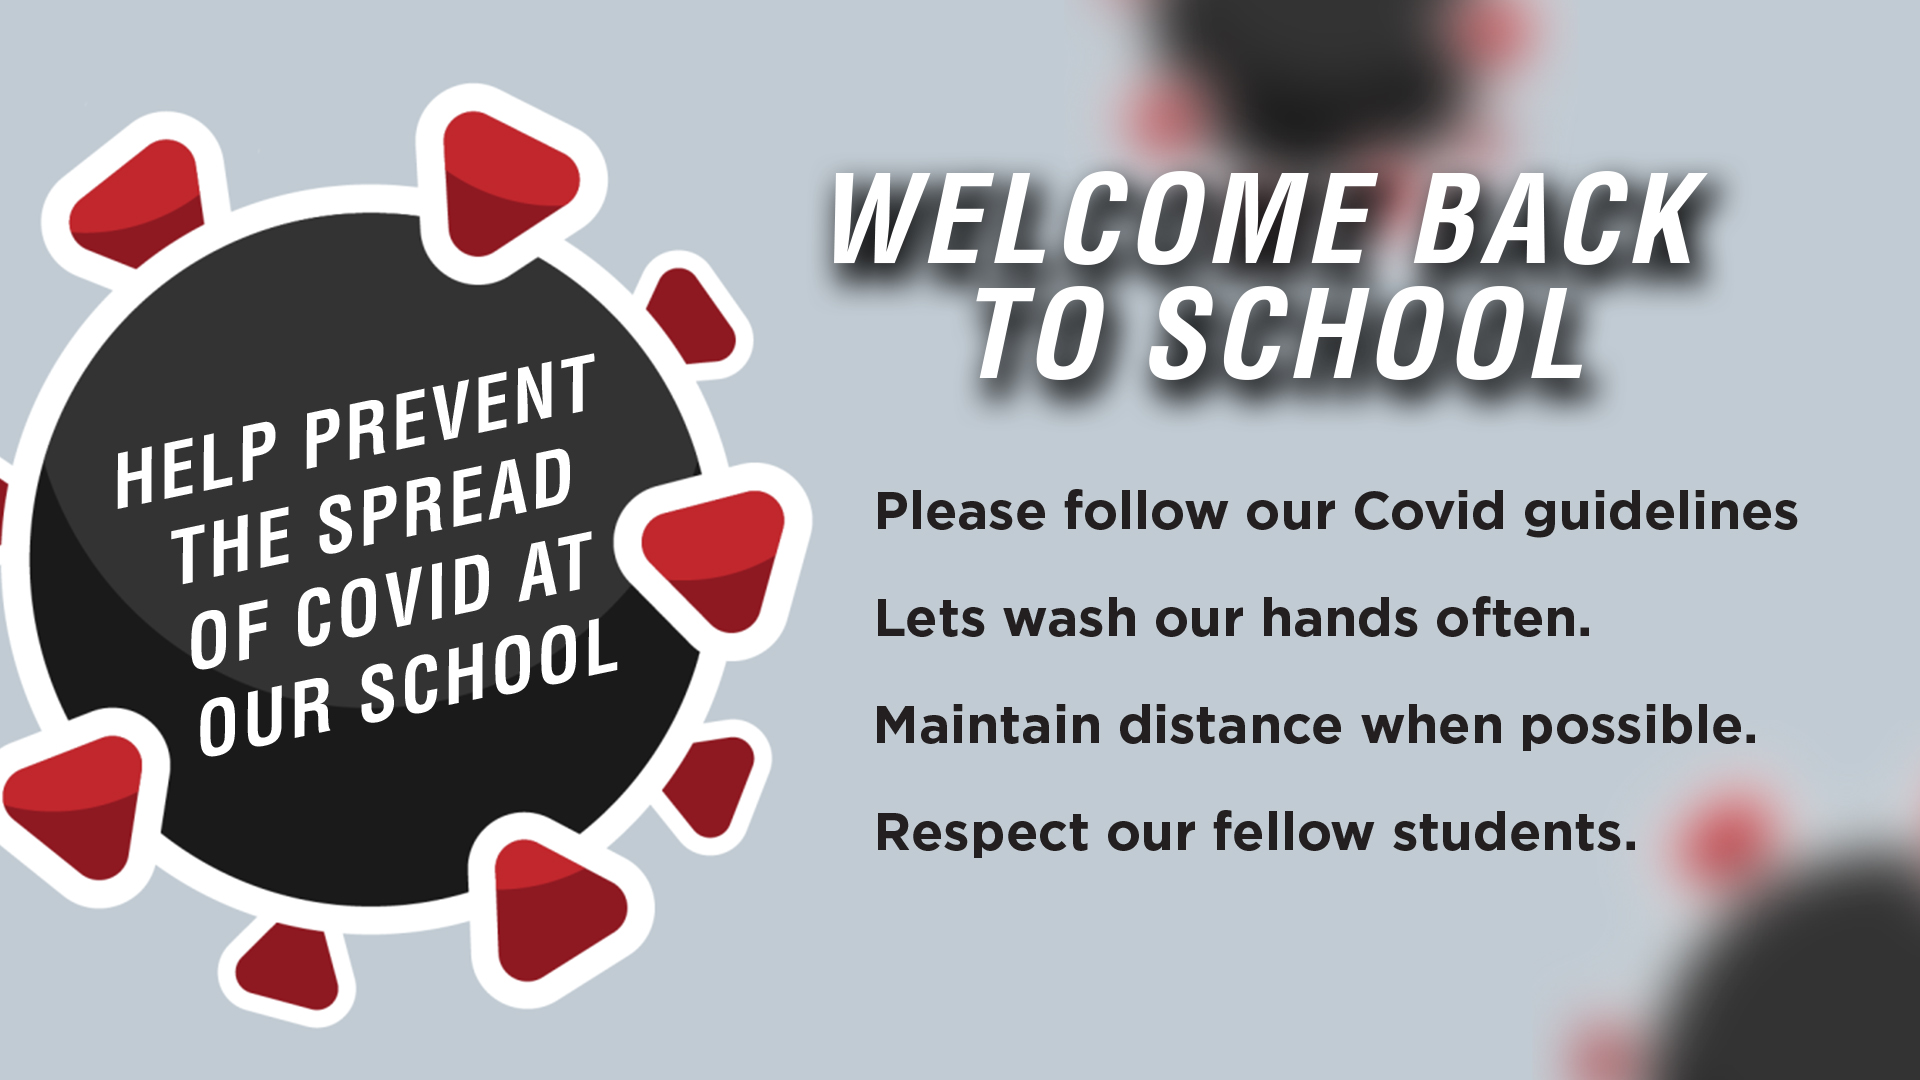 Back To School Covid Social distancing Message Graphic for Digital Signage Communications